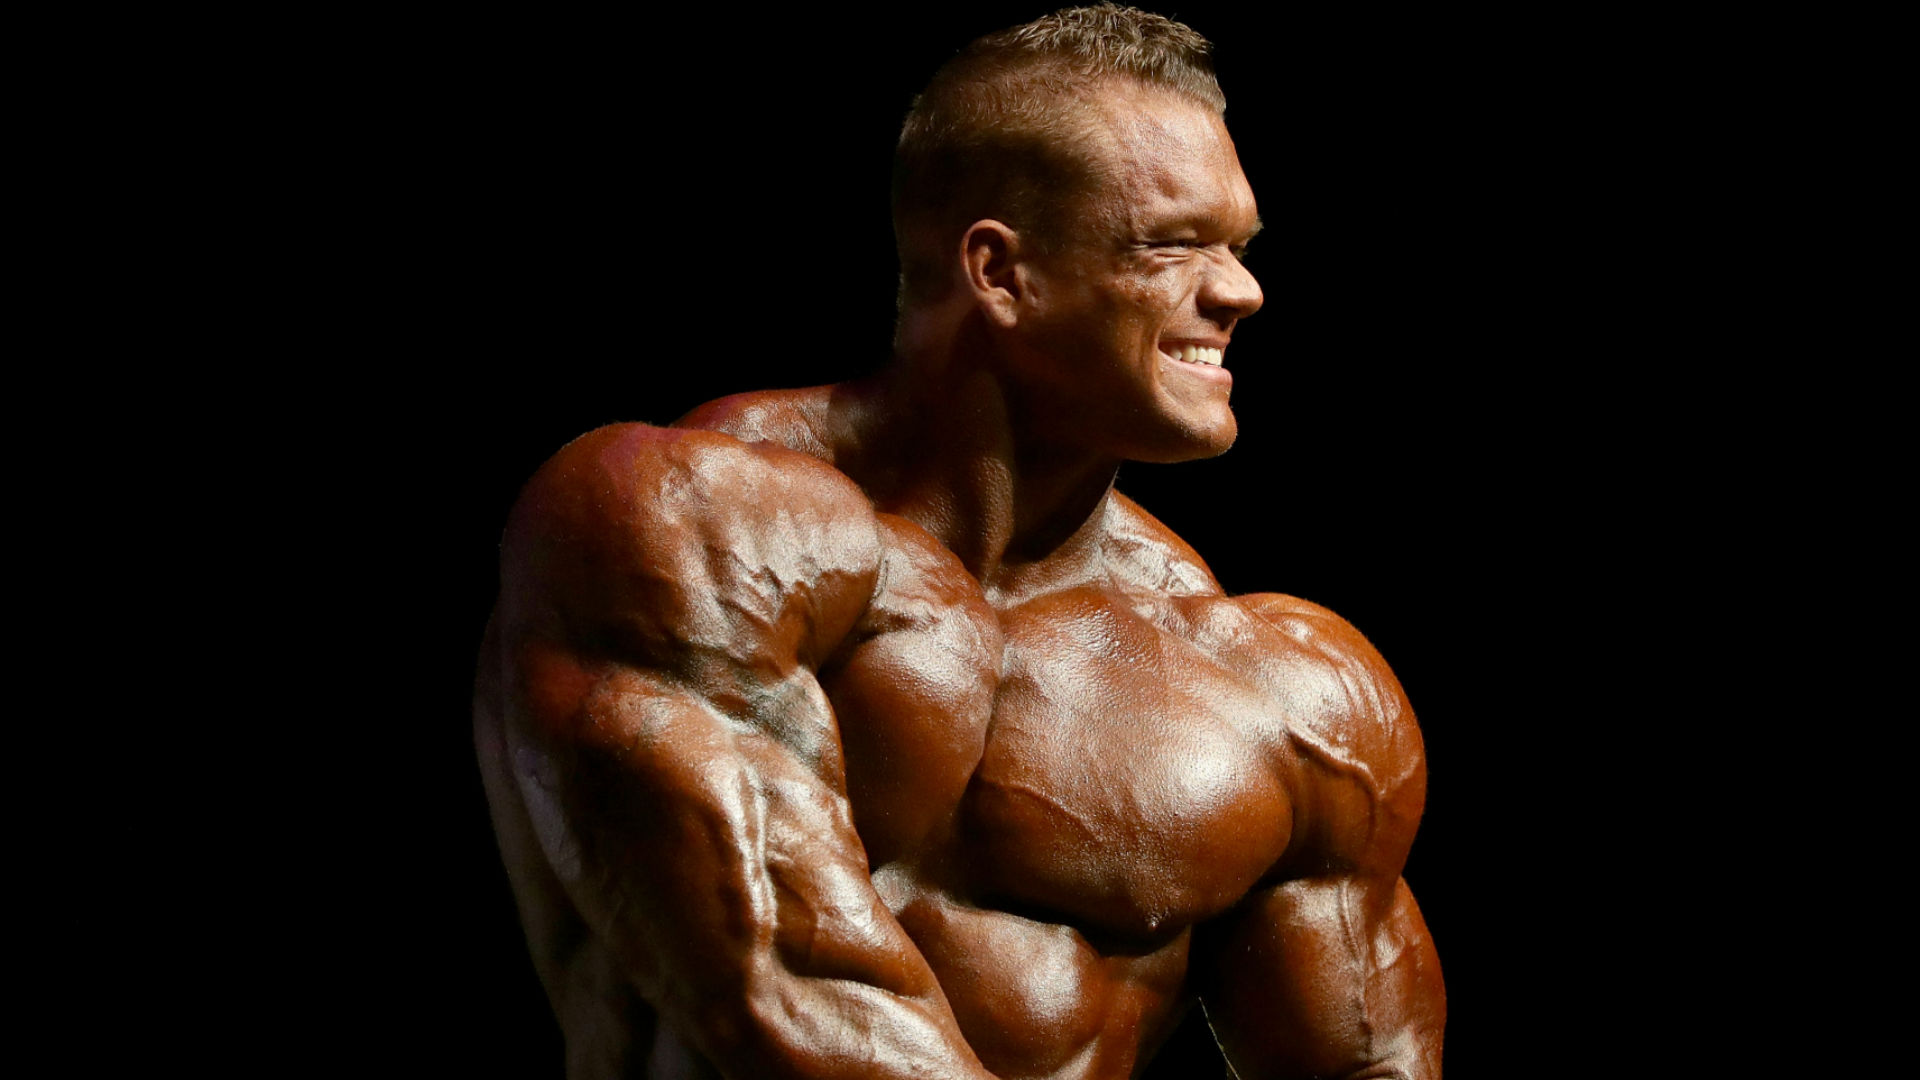 Dallas McCarver, Bodybuilding Champ, Dies At 26